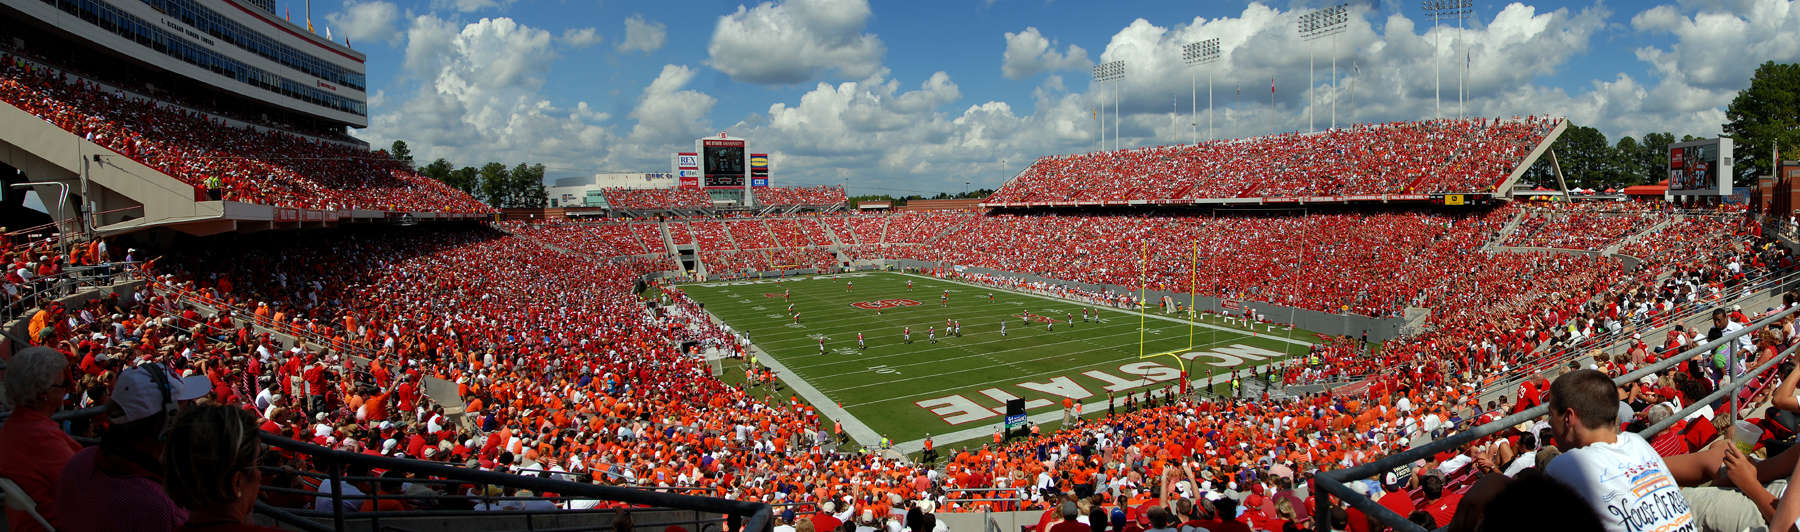 Fans packed into the stands create a sea of red in Carter-Finley Stadium